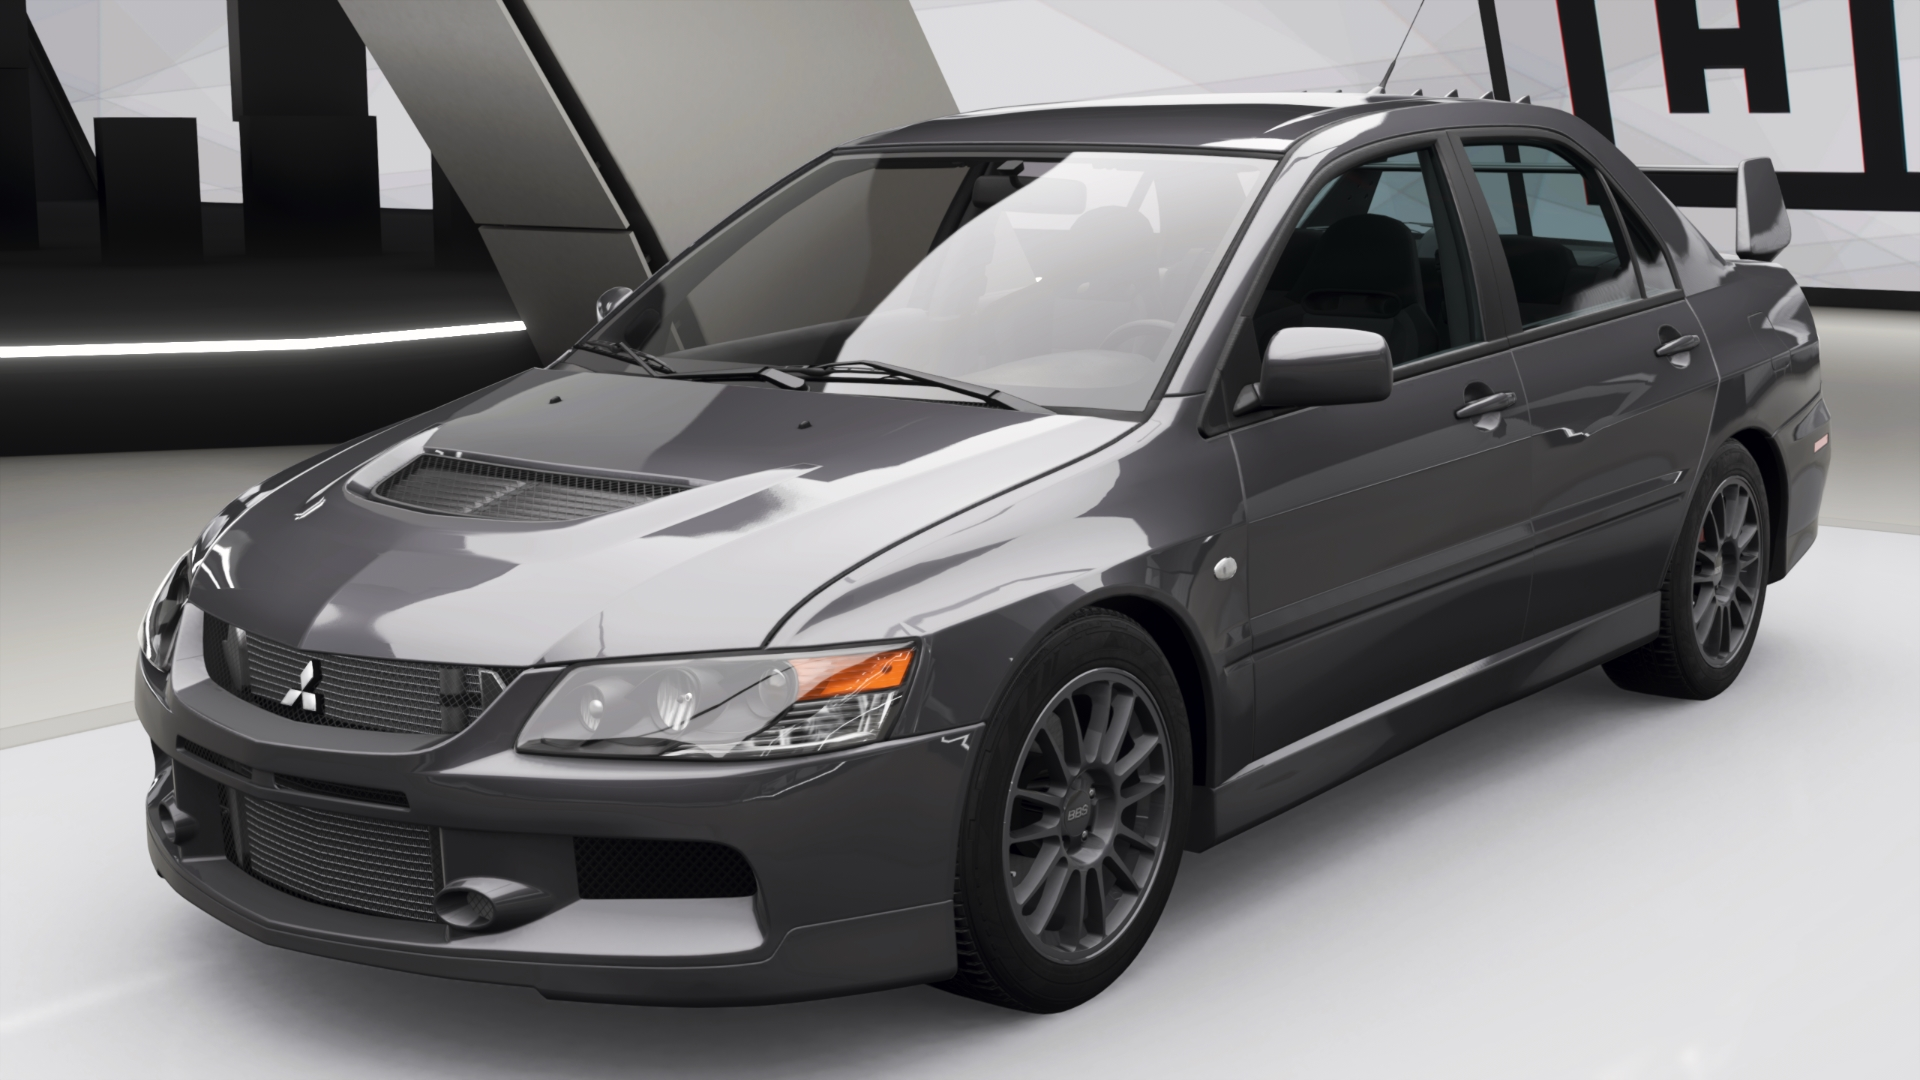 Mitsubishi Lancer Evolution IX MR | Forza Motorsport Wiki | FANDOM